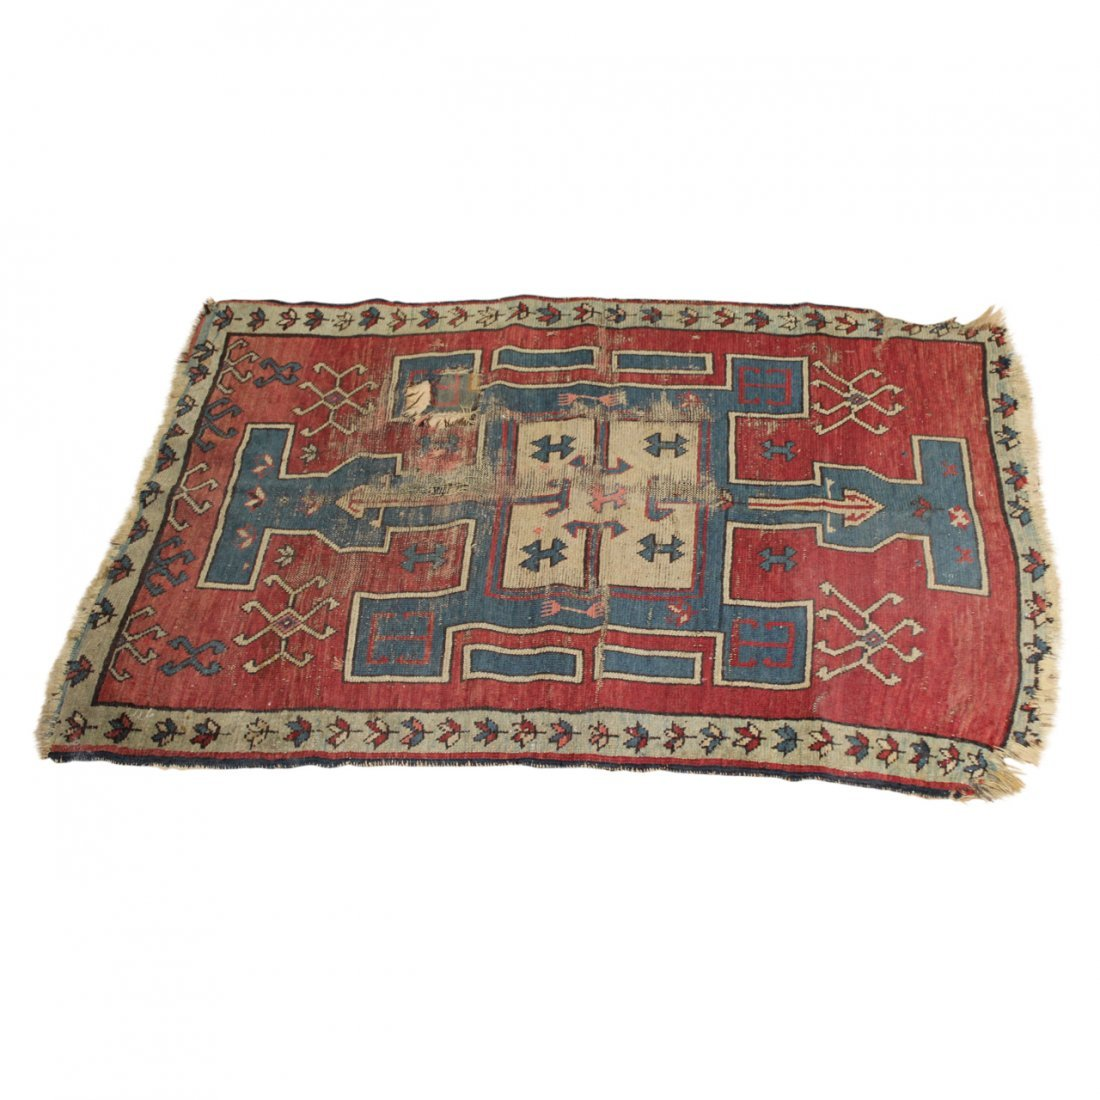 Antique Persian Tribal Kazak Carpet